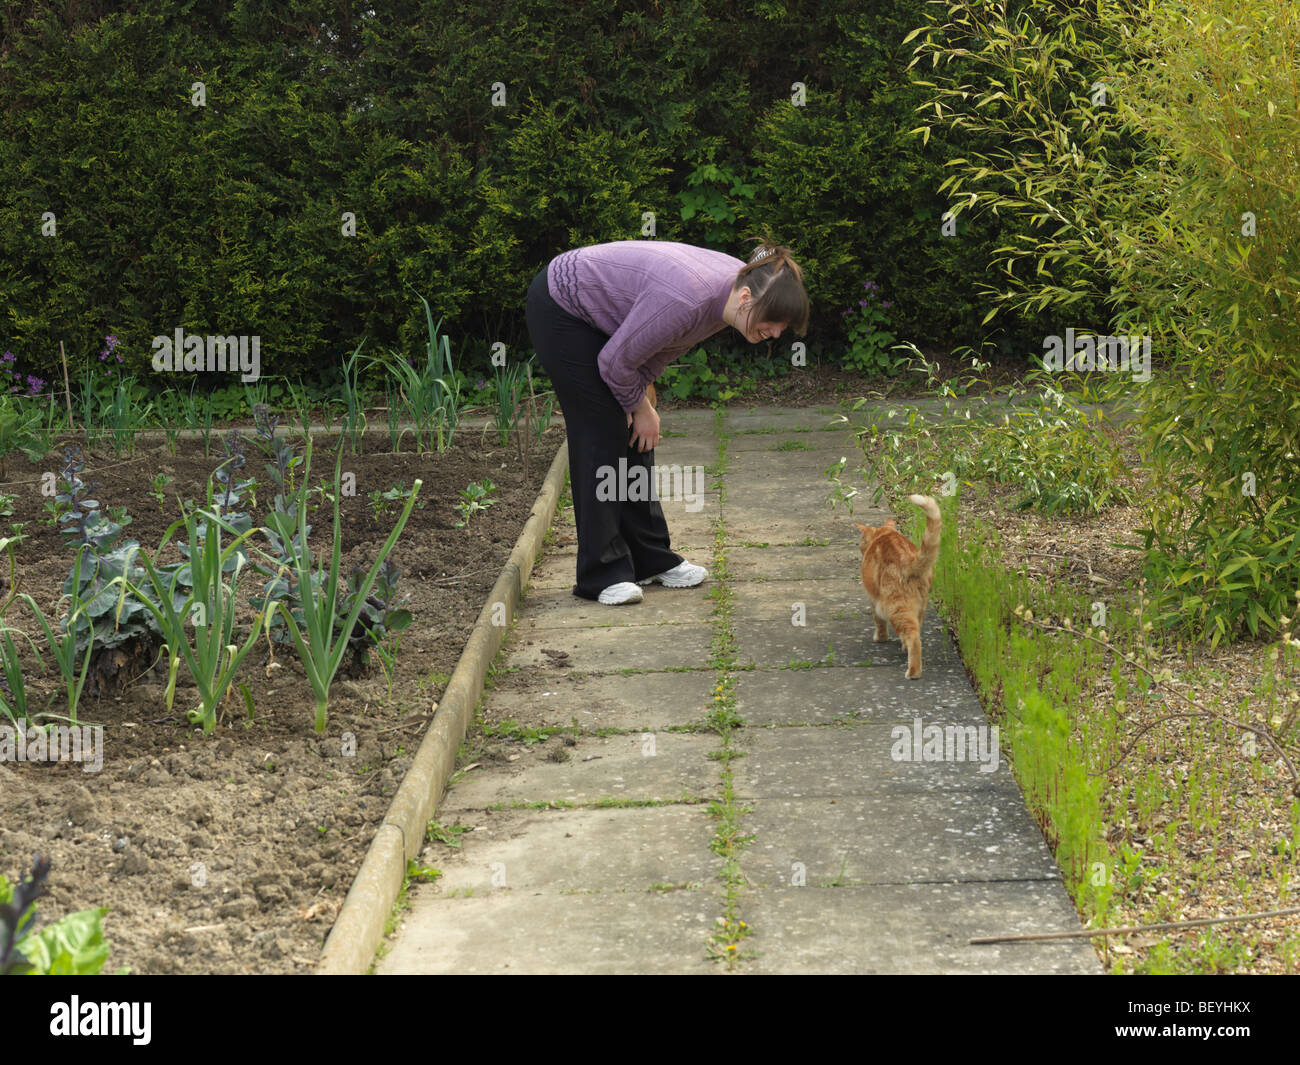 Ginger Red Tom Cat Greeting With Tail In the Air - Stock Image